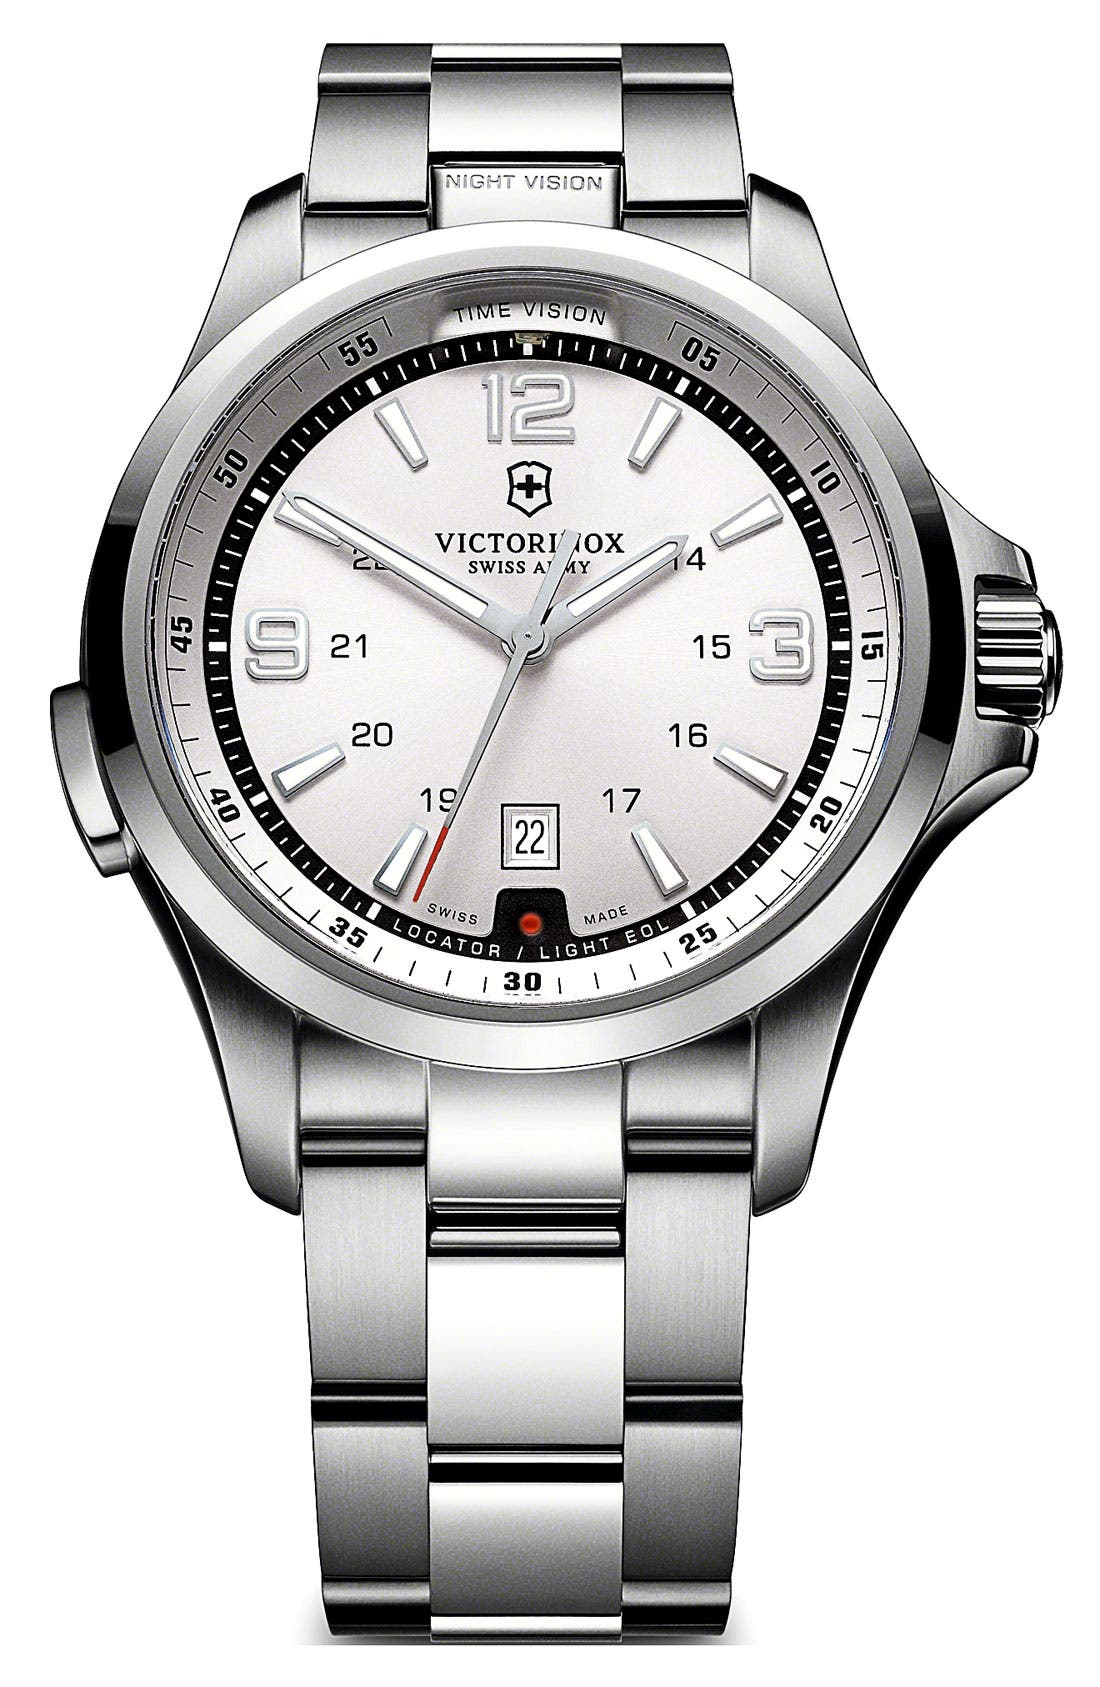 Alternate Image 1 Selected - Victorinox Swiss Army® 'Night Vision' Bracelet Watch, 42mm